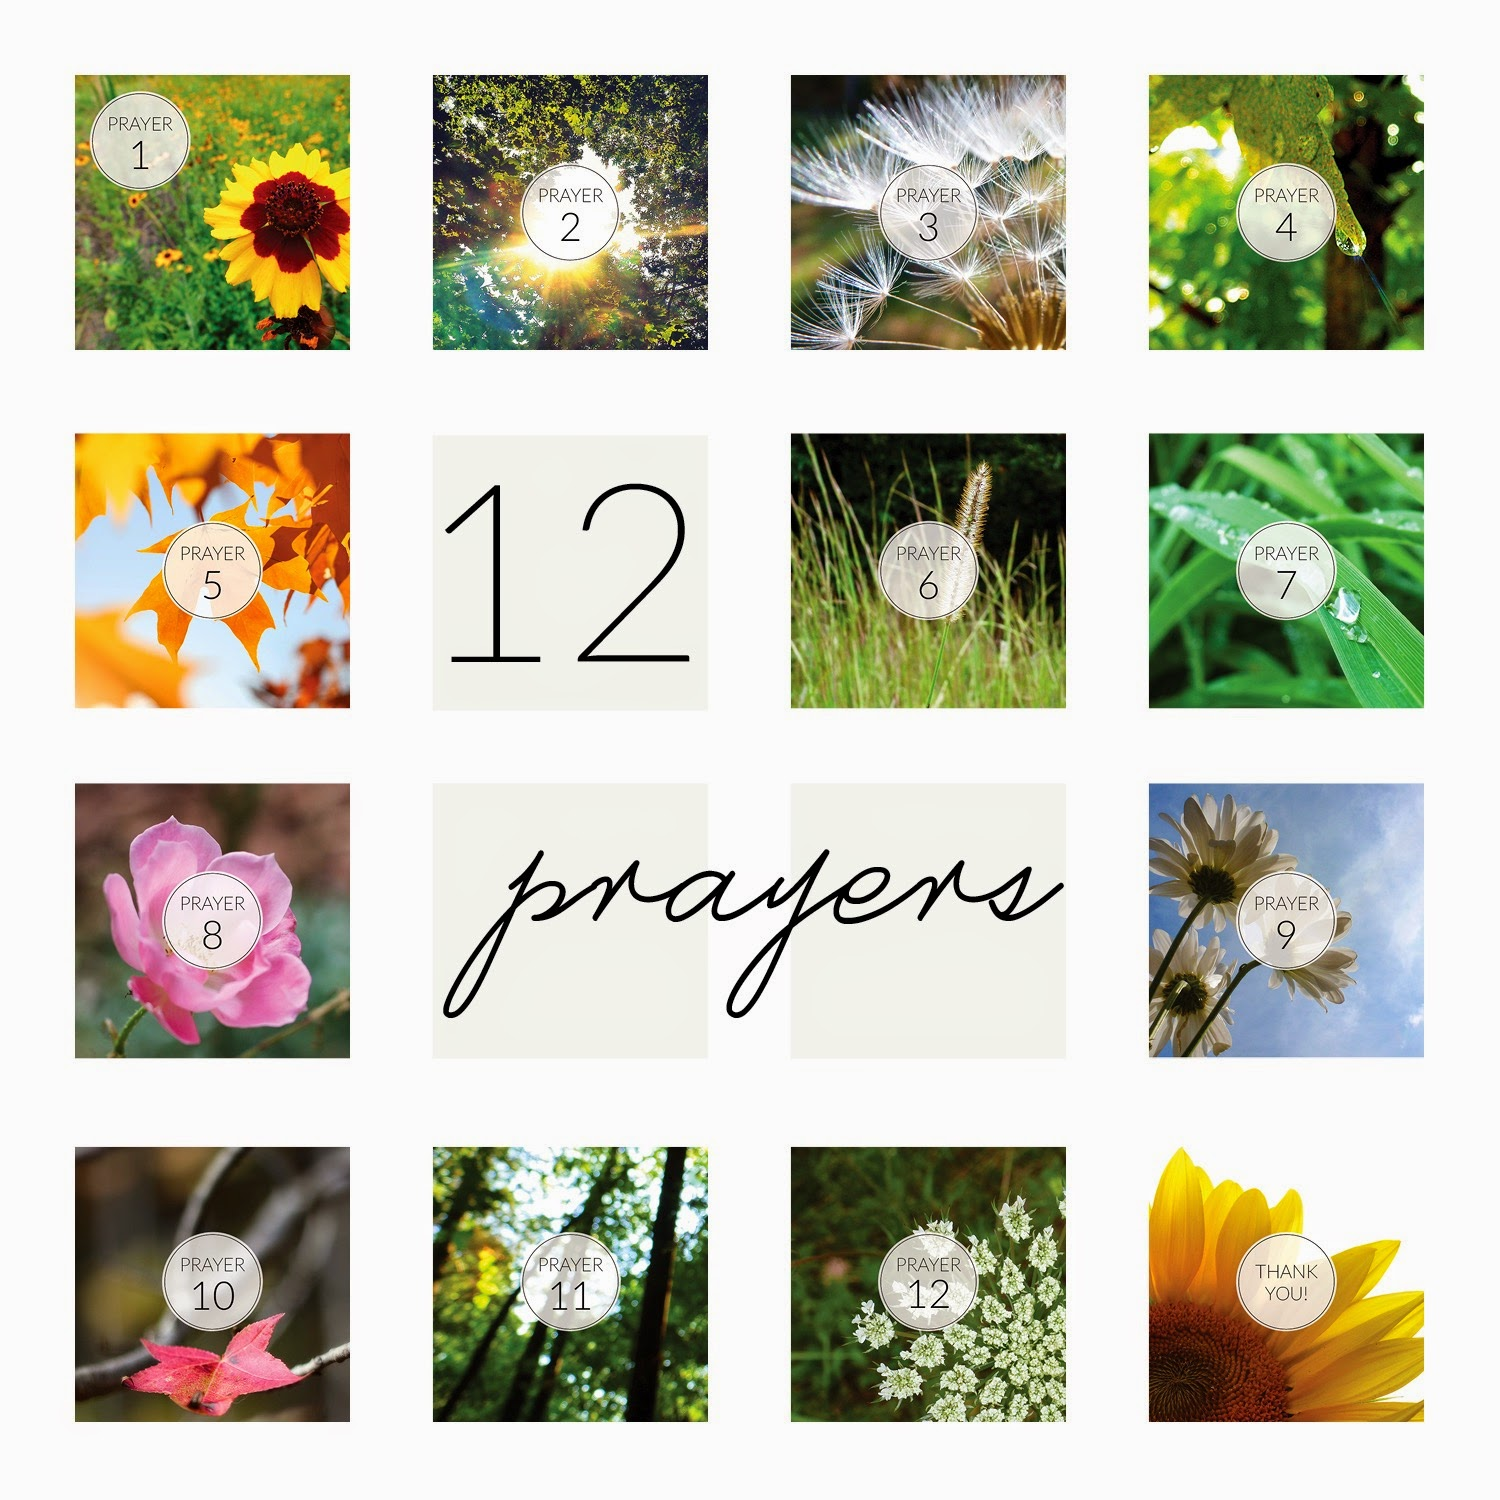 12 Prayers Shop